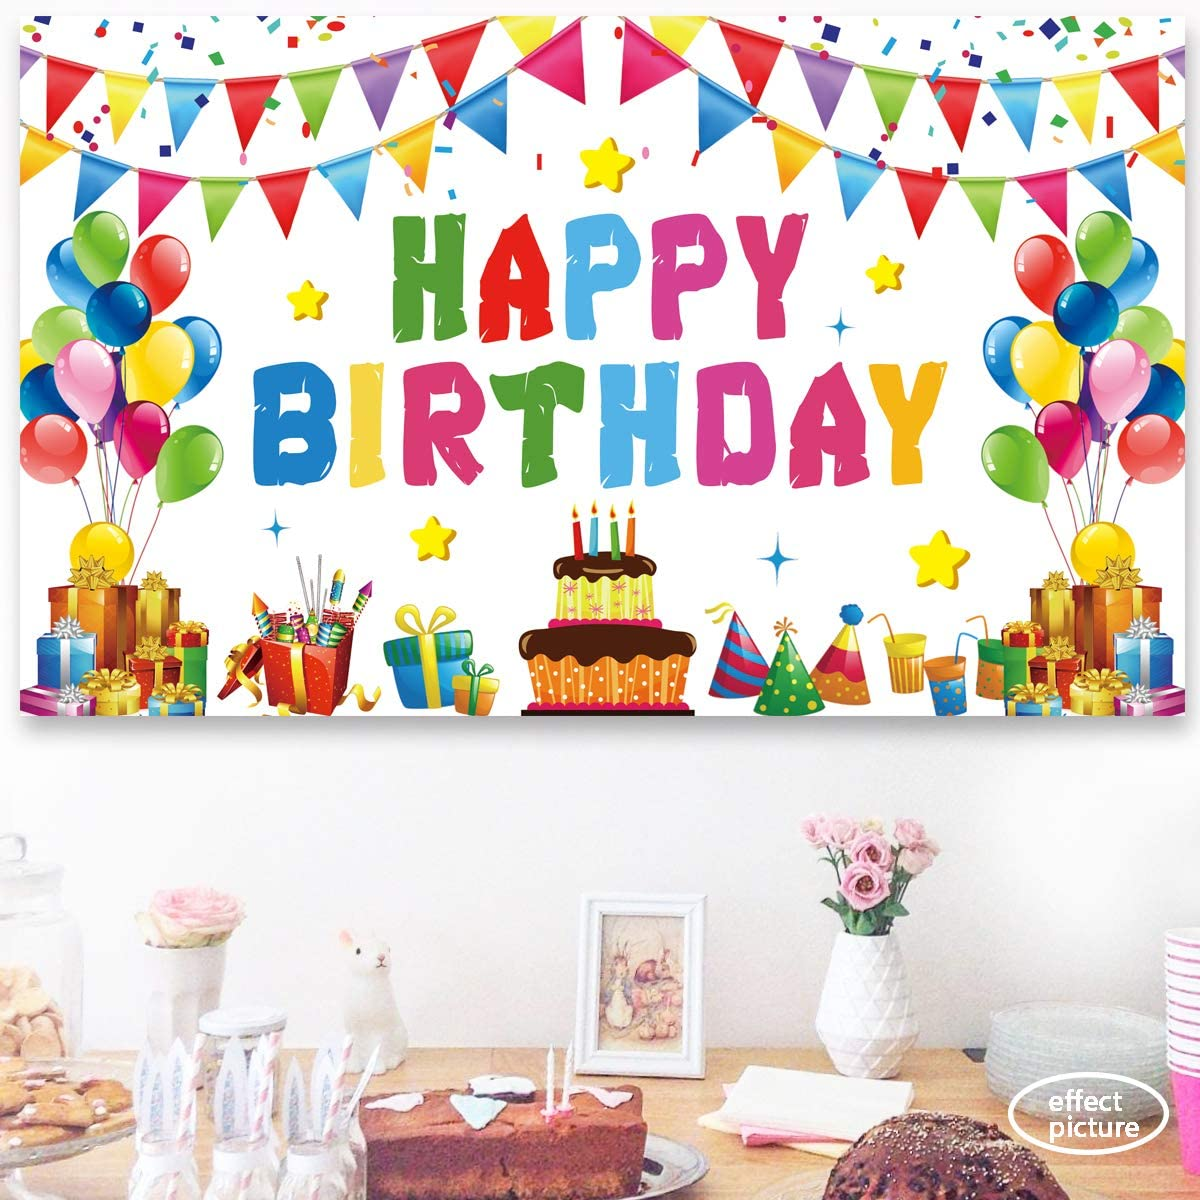 6 x 3.6 Feet Large Birthday Backdrop for Girls Kids Rainbow Ushinemi Happy Birthday Backdrop Banner Colorful Party Decorations Sign